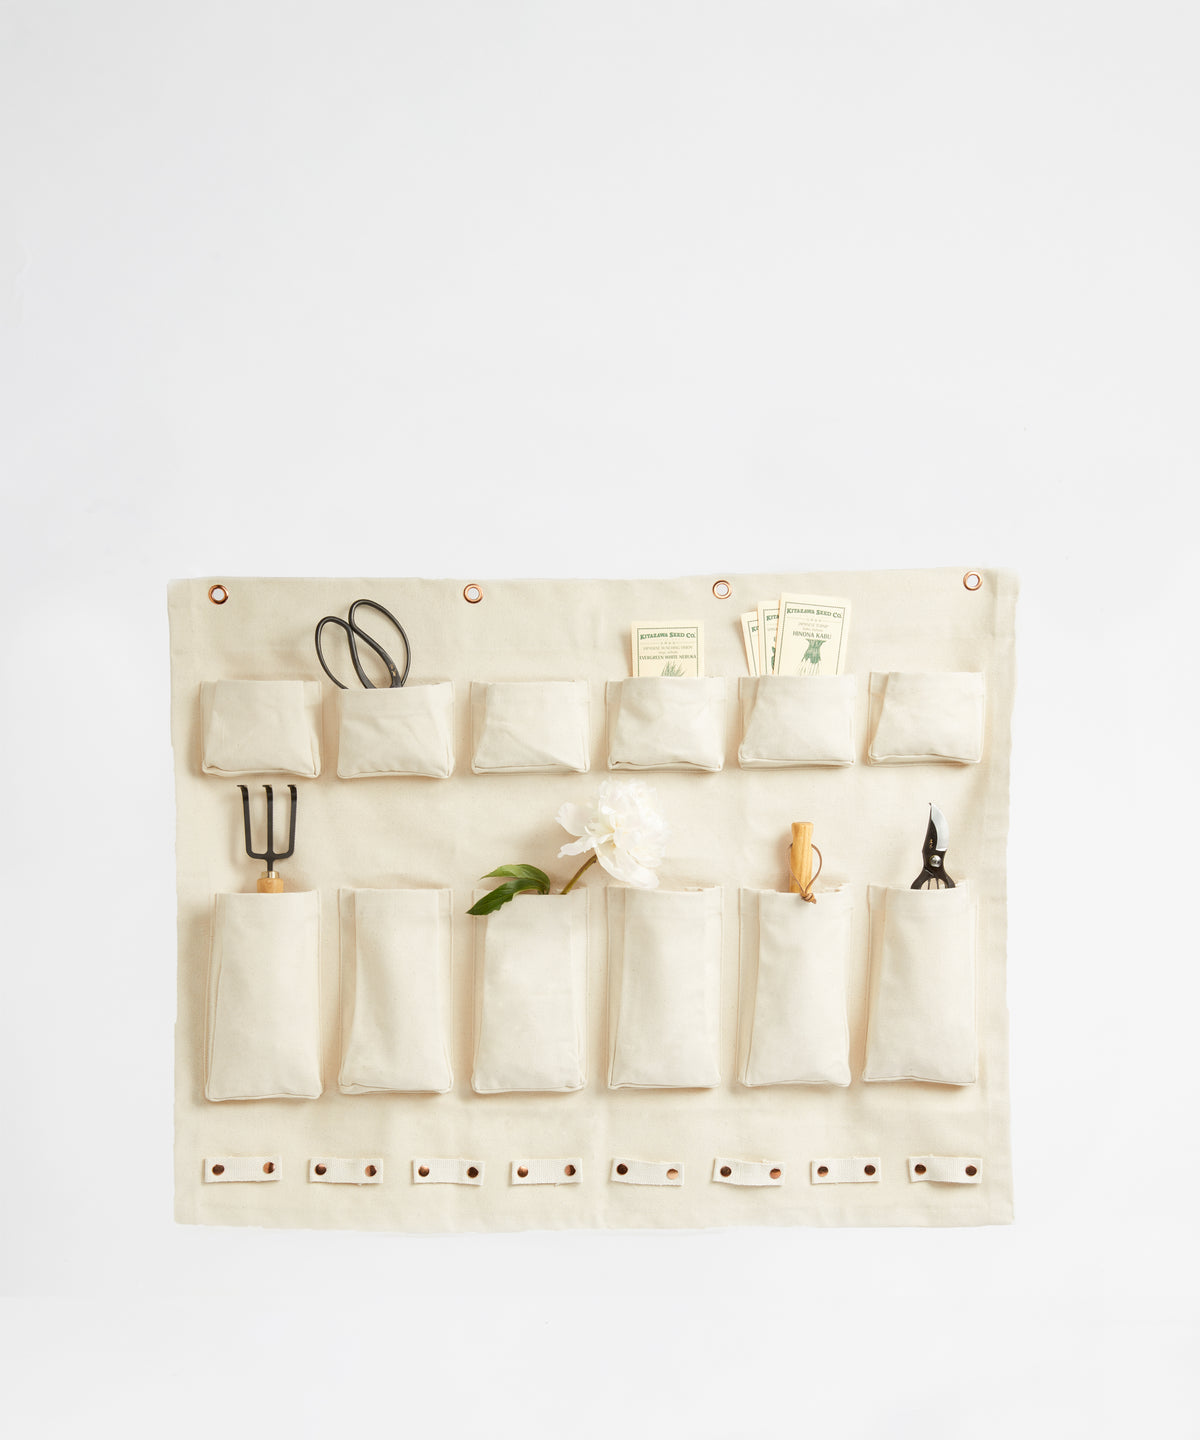 canvas wall organizer with compartments